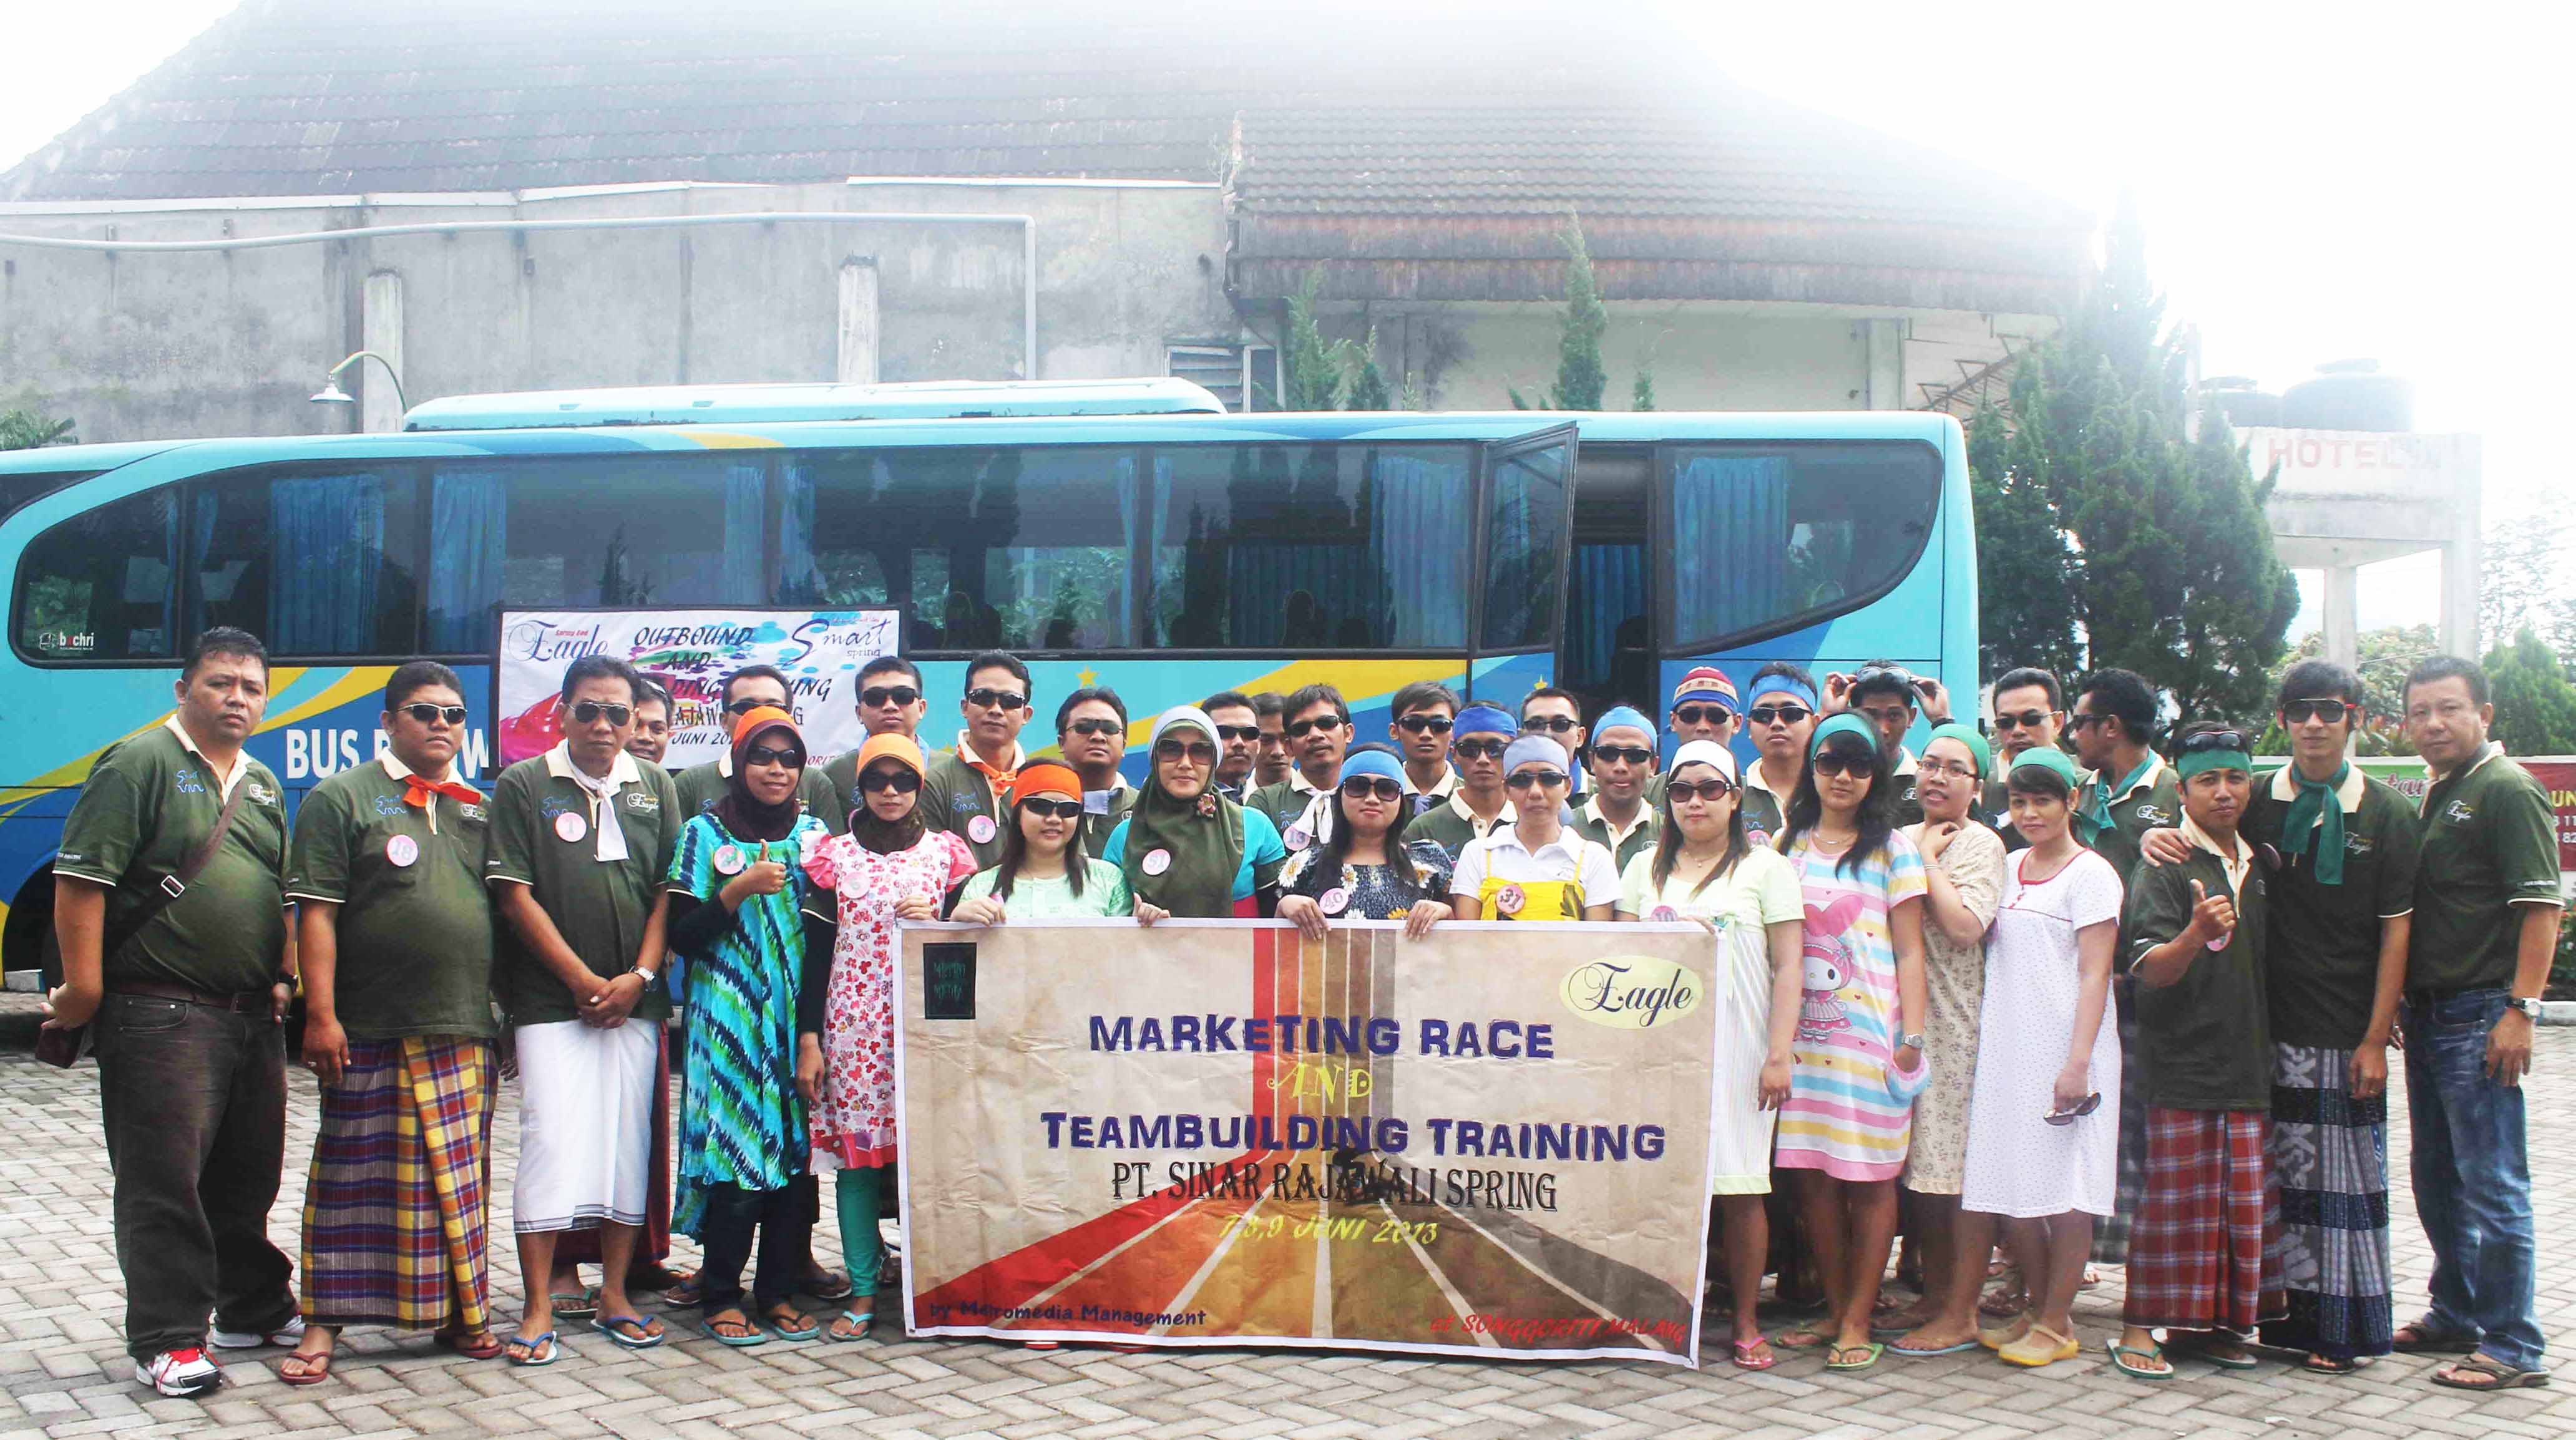 Outbound PT Sinar Rajawali Spring